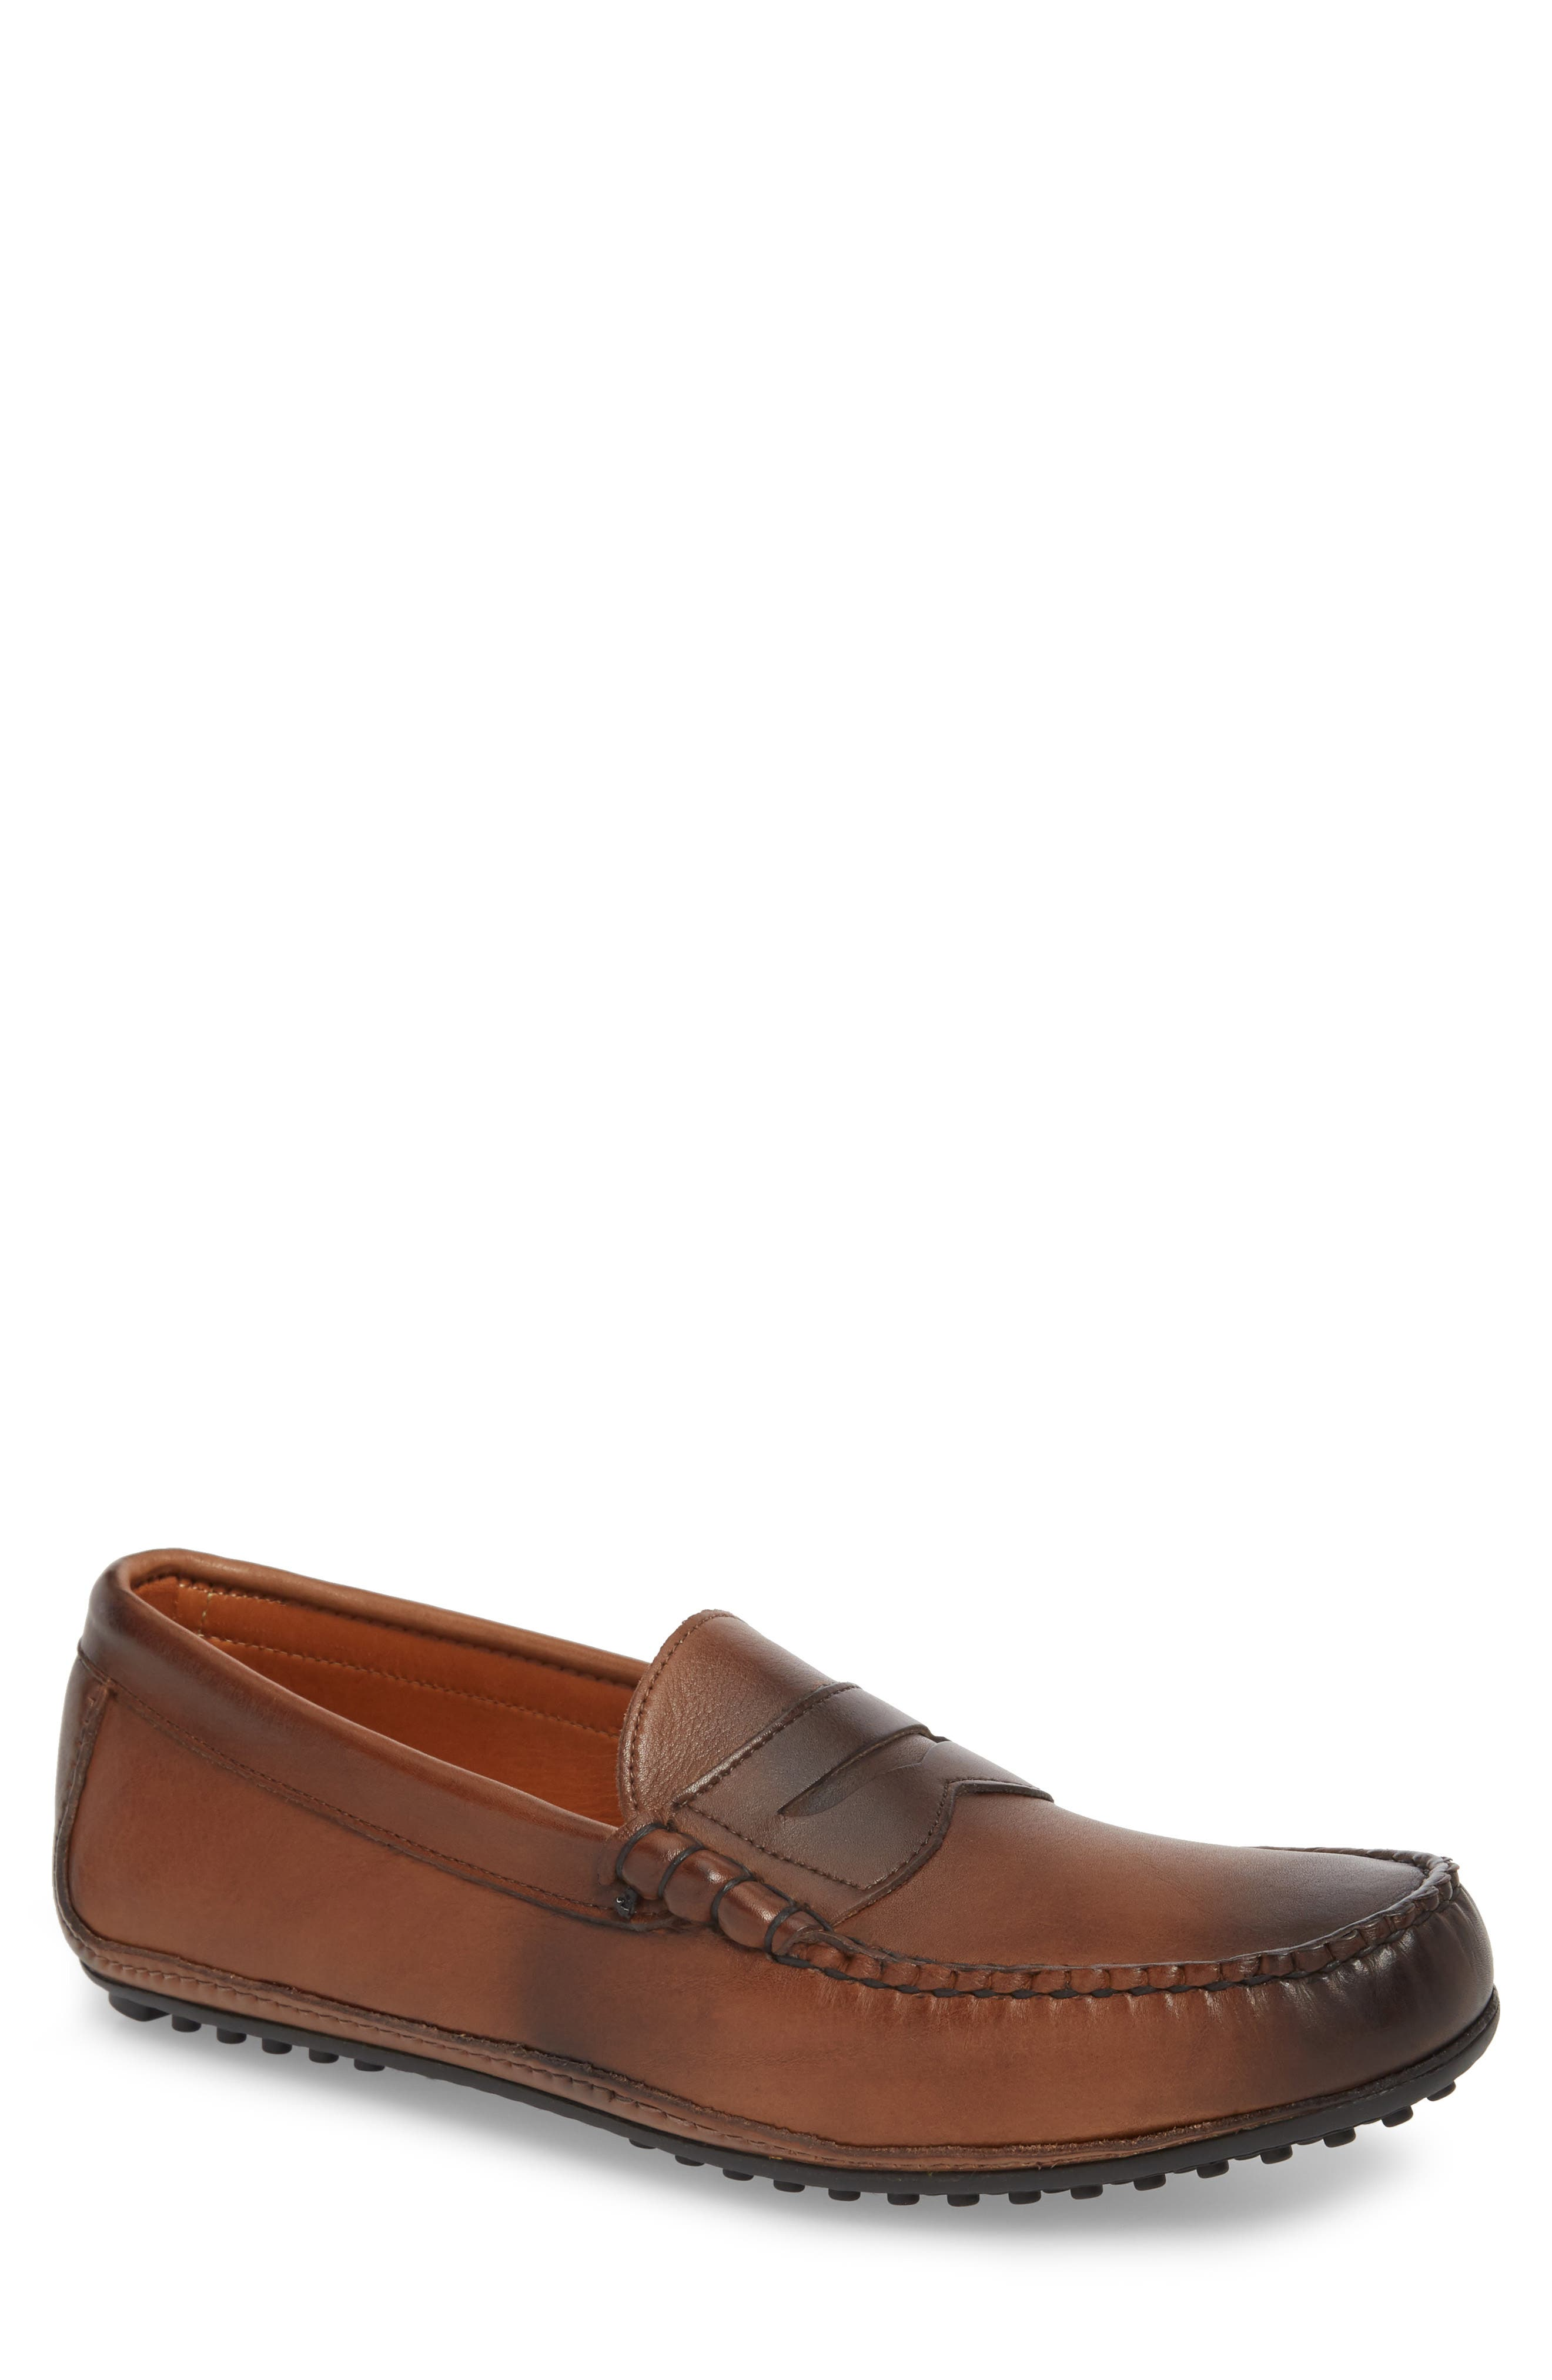 Siesta Key Penny Loafer,                         Main,                         color, BROWN LEATHER